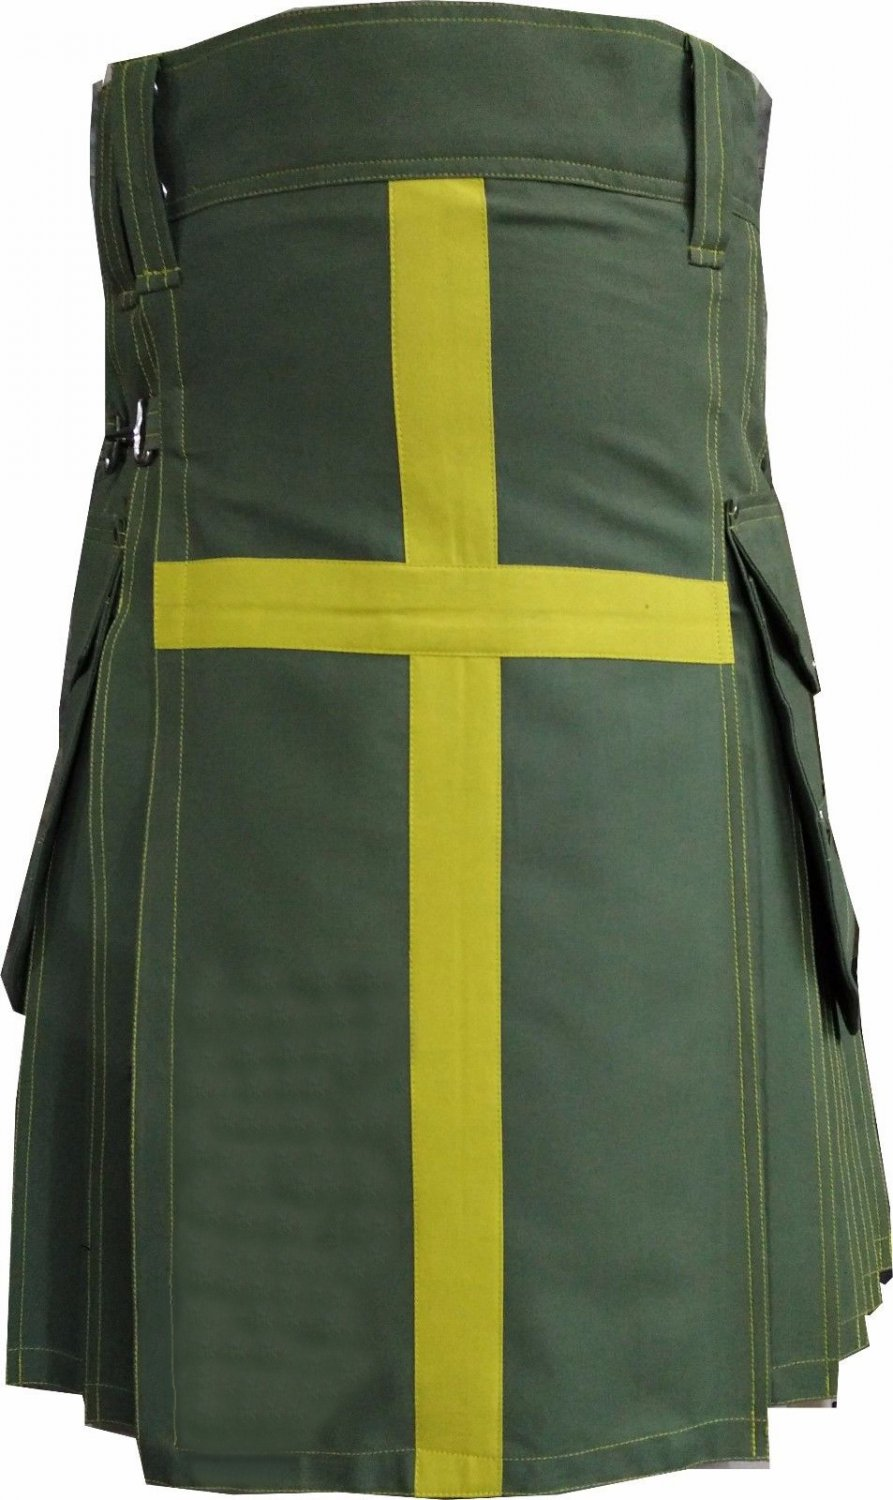 NEW DC ACTIVE MEN OLIVE GREEN AND YELLOW HANDMADE UNISEX COTTON UTILITY KILT SIZE 50